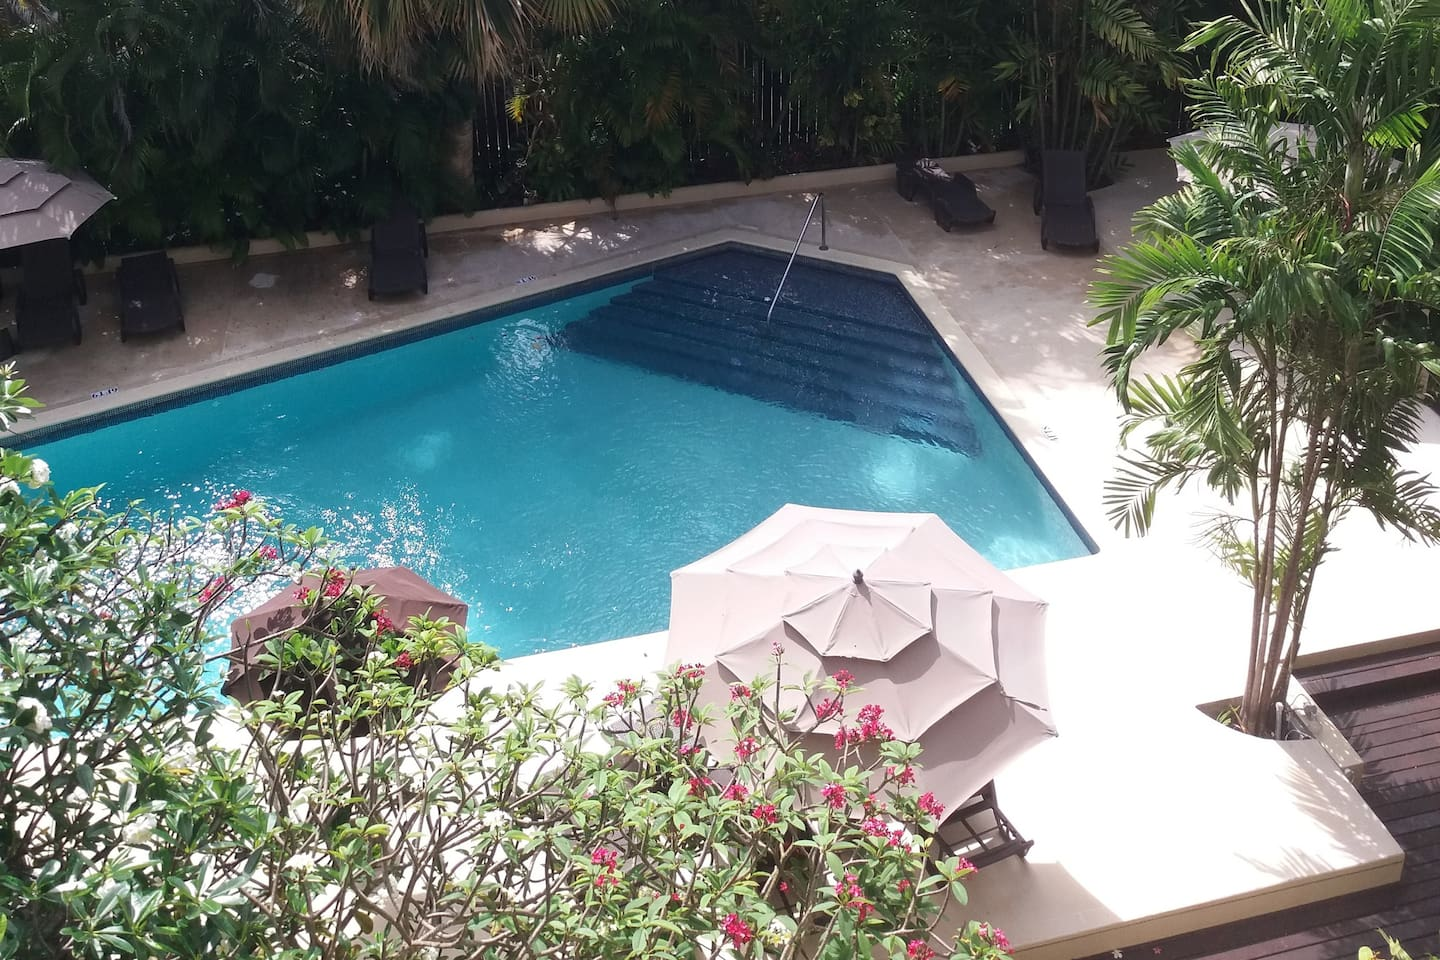 Wake up to this view of pool from the bedroom balcony